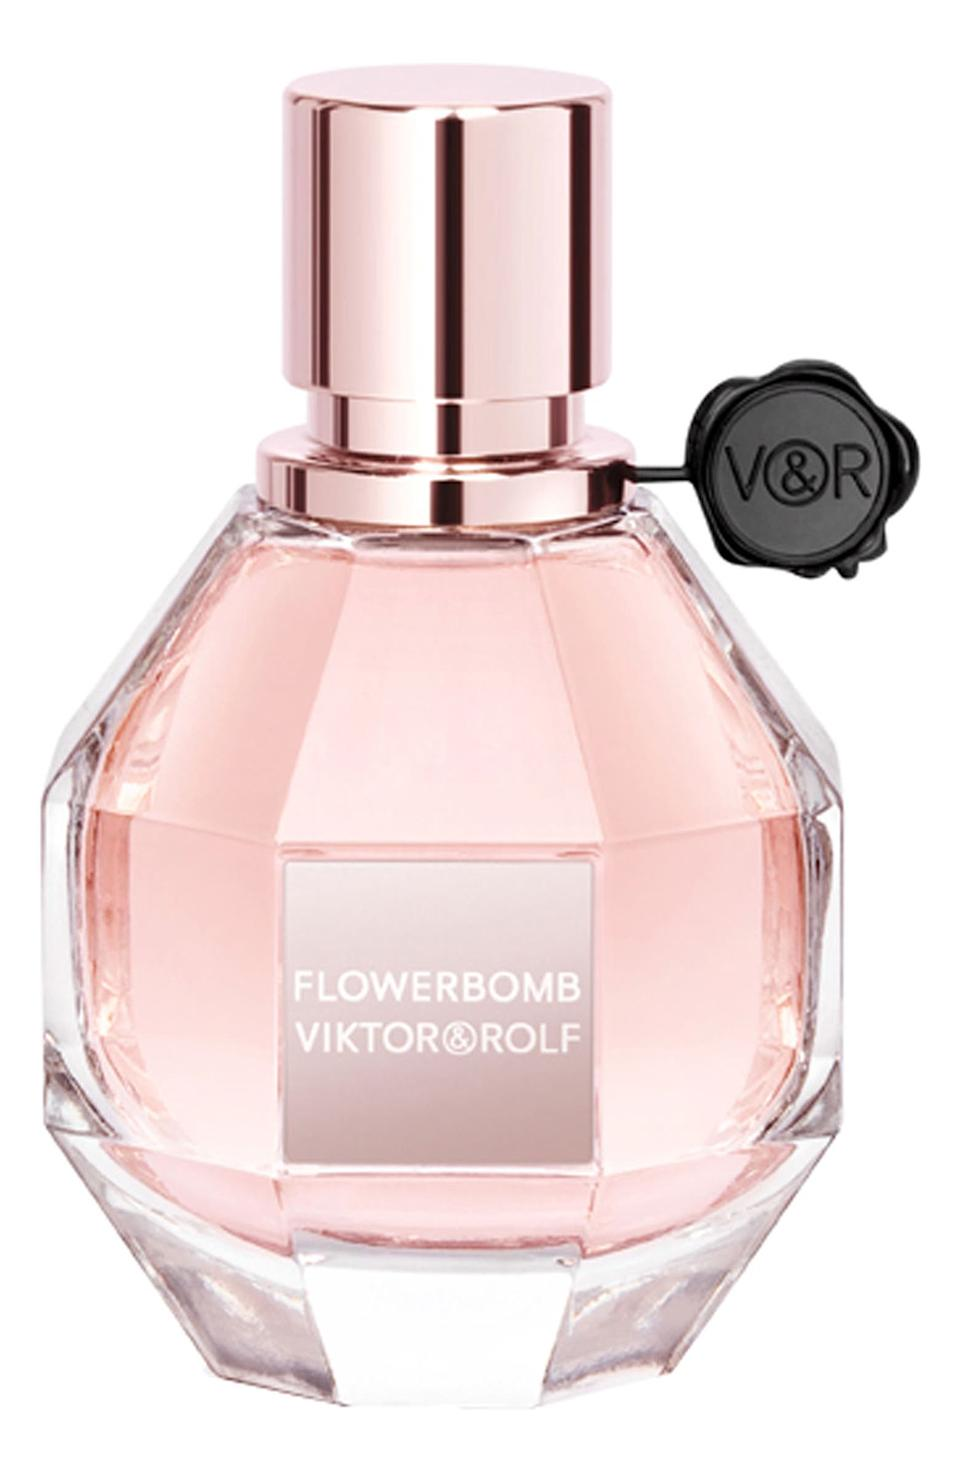 Flowerbomb Eau de Parfum Fragrance Spray is on sale at Nordstrom during the Beauty and Fragrance sale, from $55.